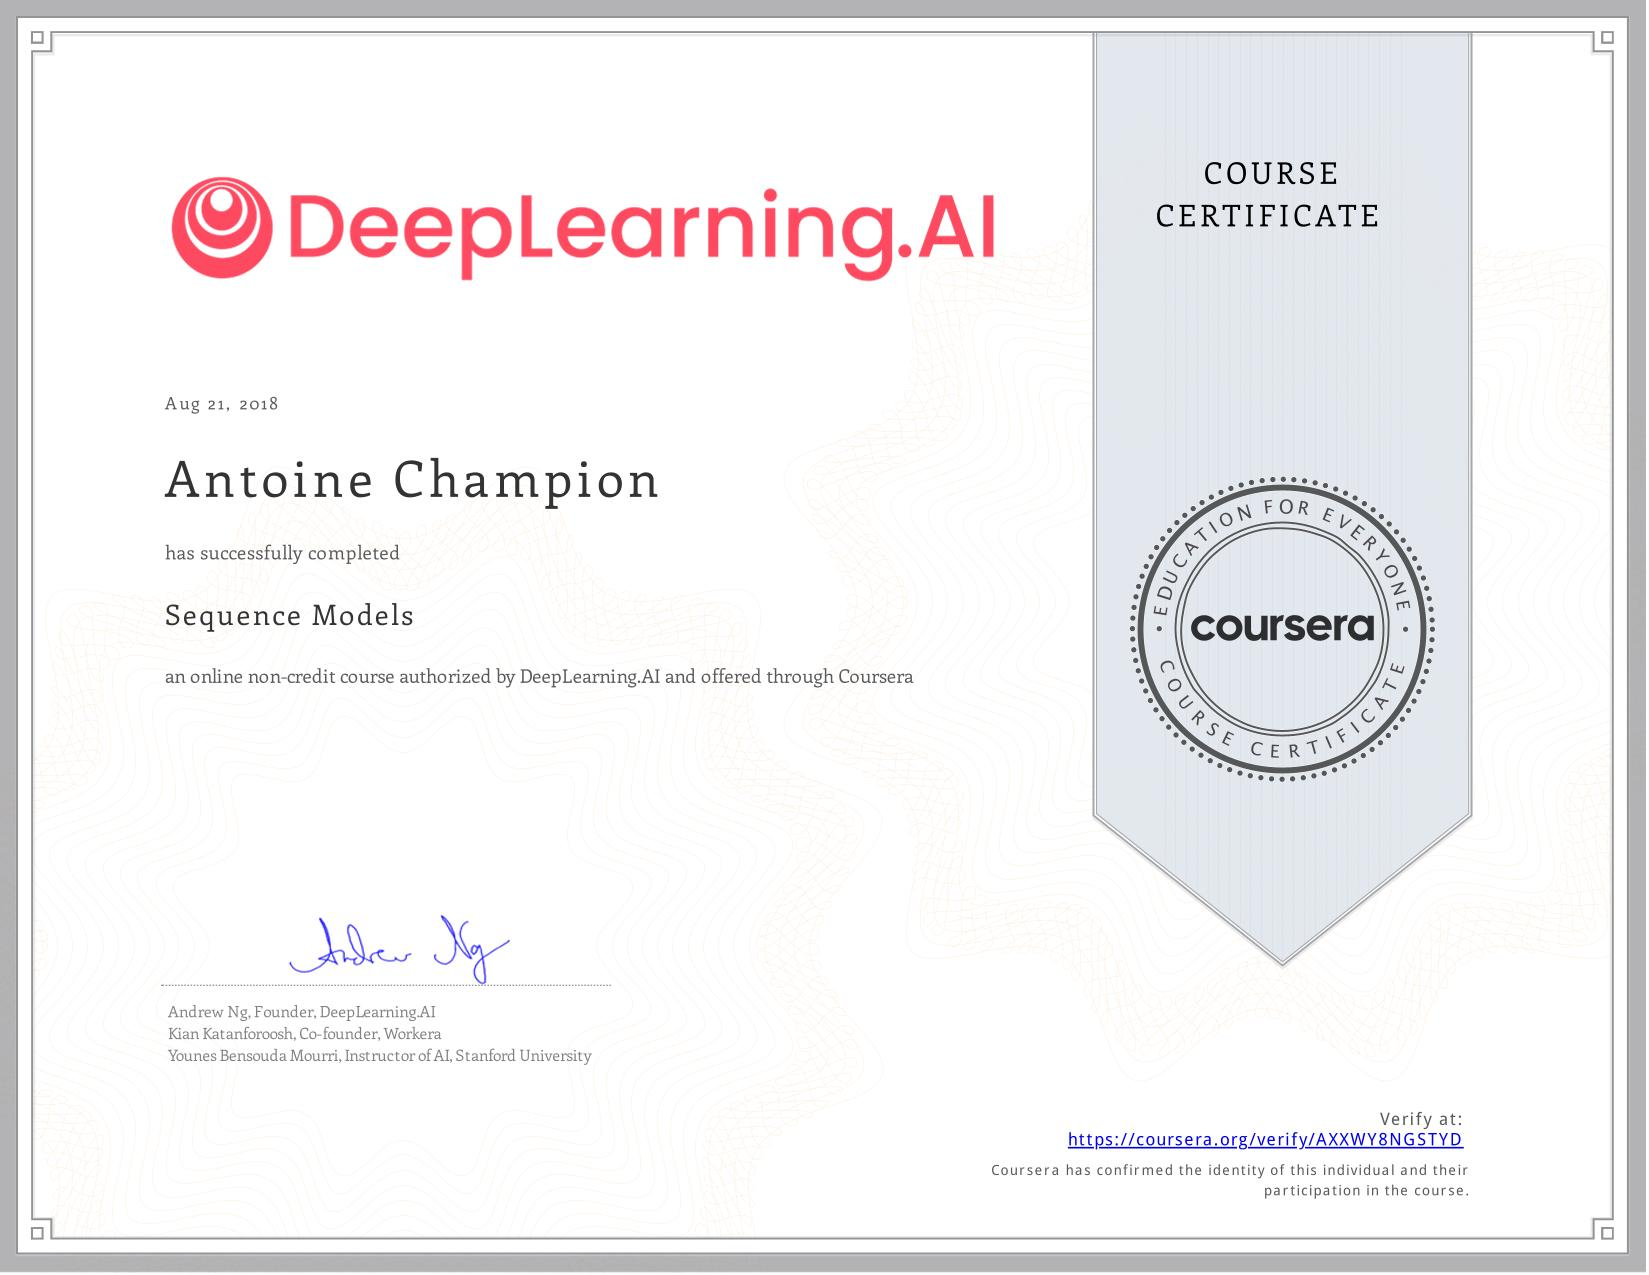 View certificate for Antoine Champion, Sequence Models, an online non-credit course authorized by deeplearning.ai and offered through Coursera